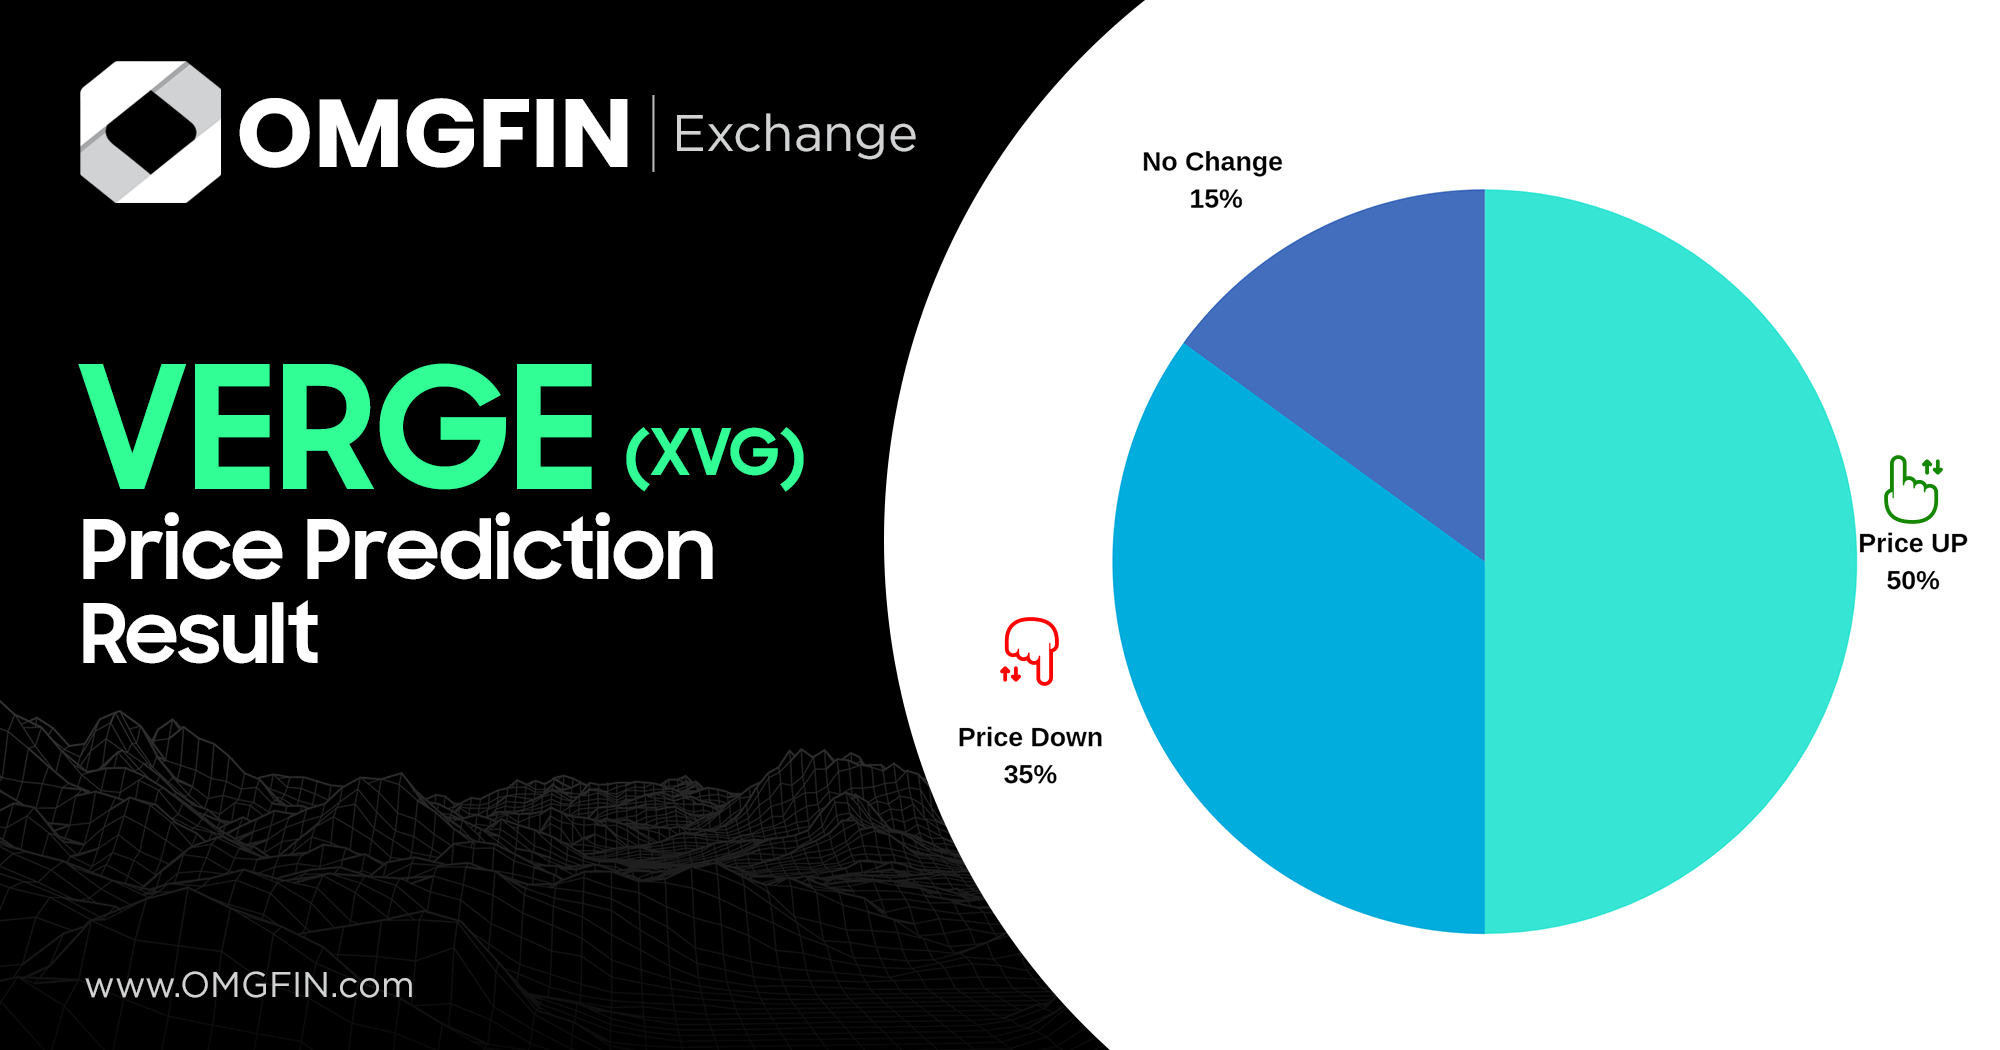 Verge Price Prediction Result based on the Verge User — o8